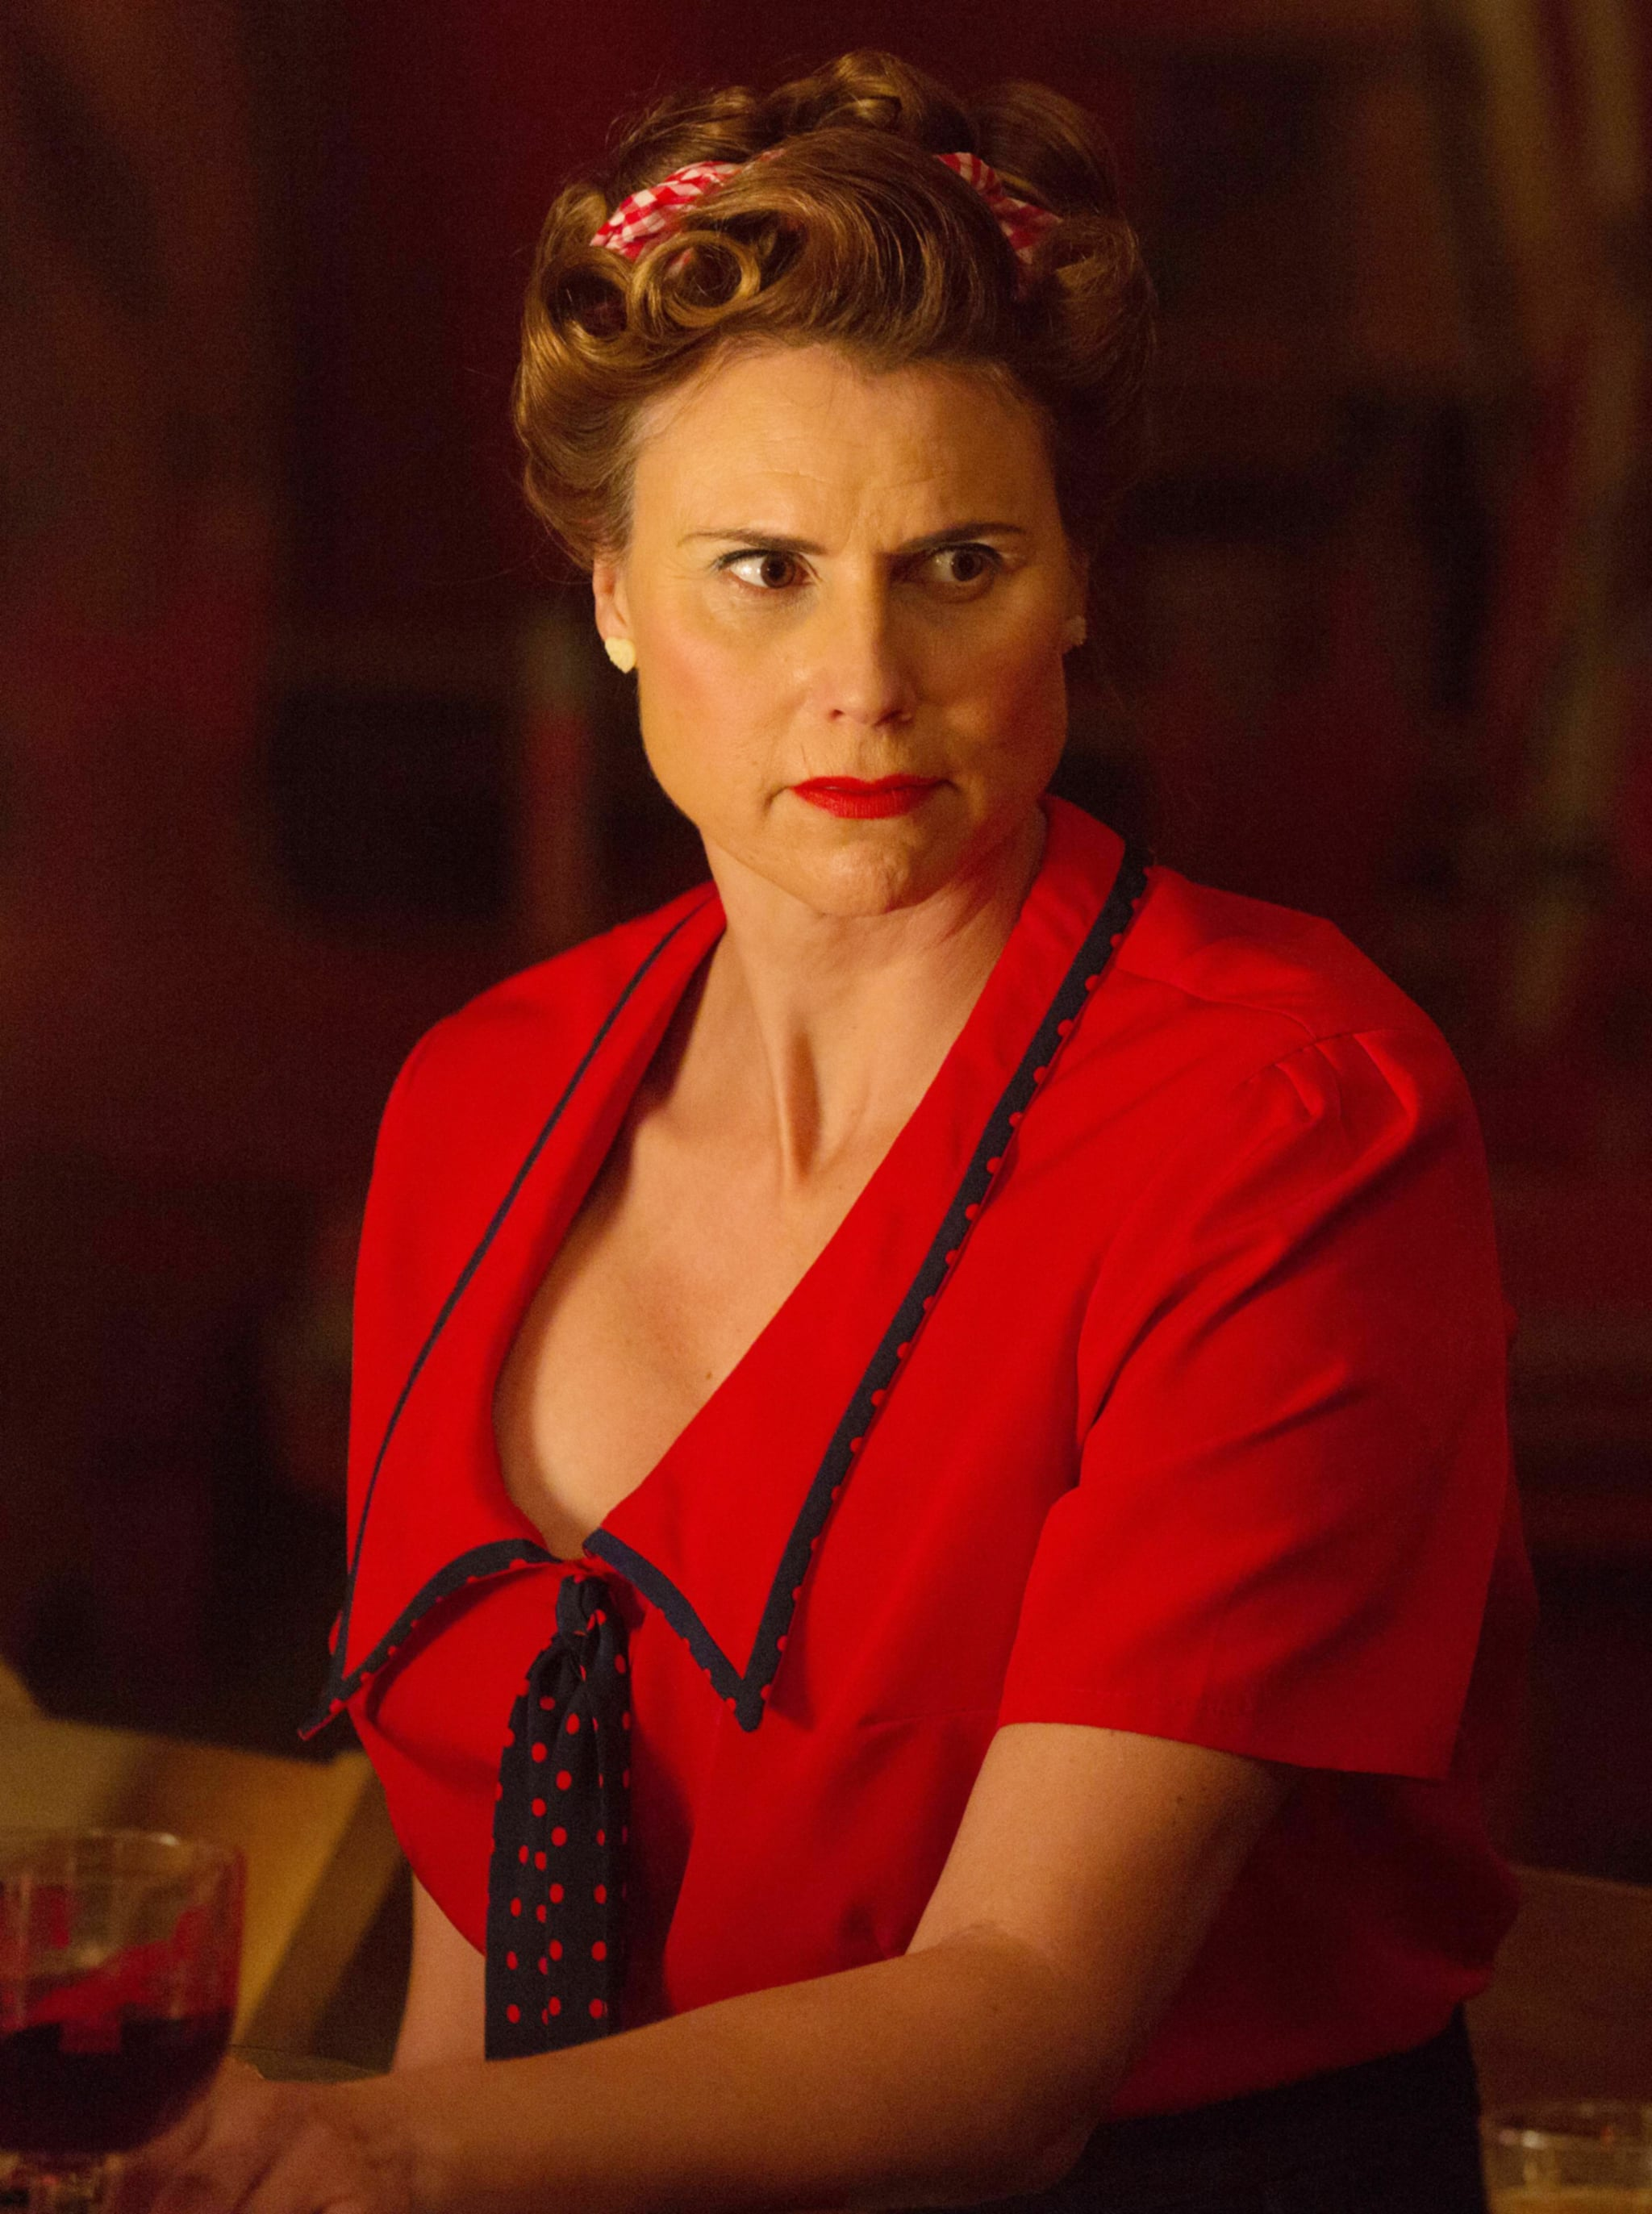 AMERICAN HORROR STORY: FREAK SHOW, Erika Ervin in 'Show Stoppers' (Season 4, Episode 12, aired January 14, 2015). ph: Michele K. Short/FX Networks/courtesy Everett Collection